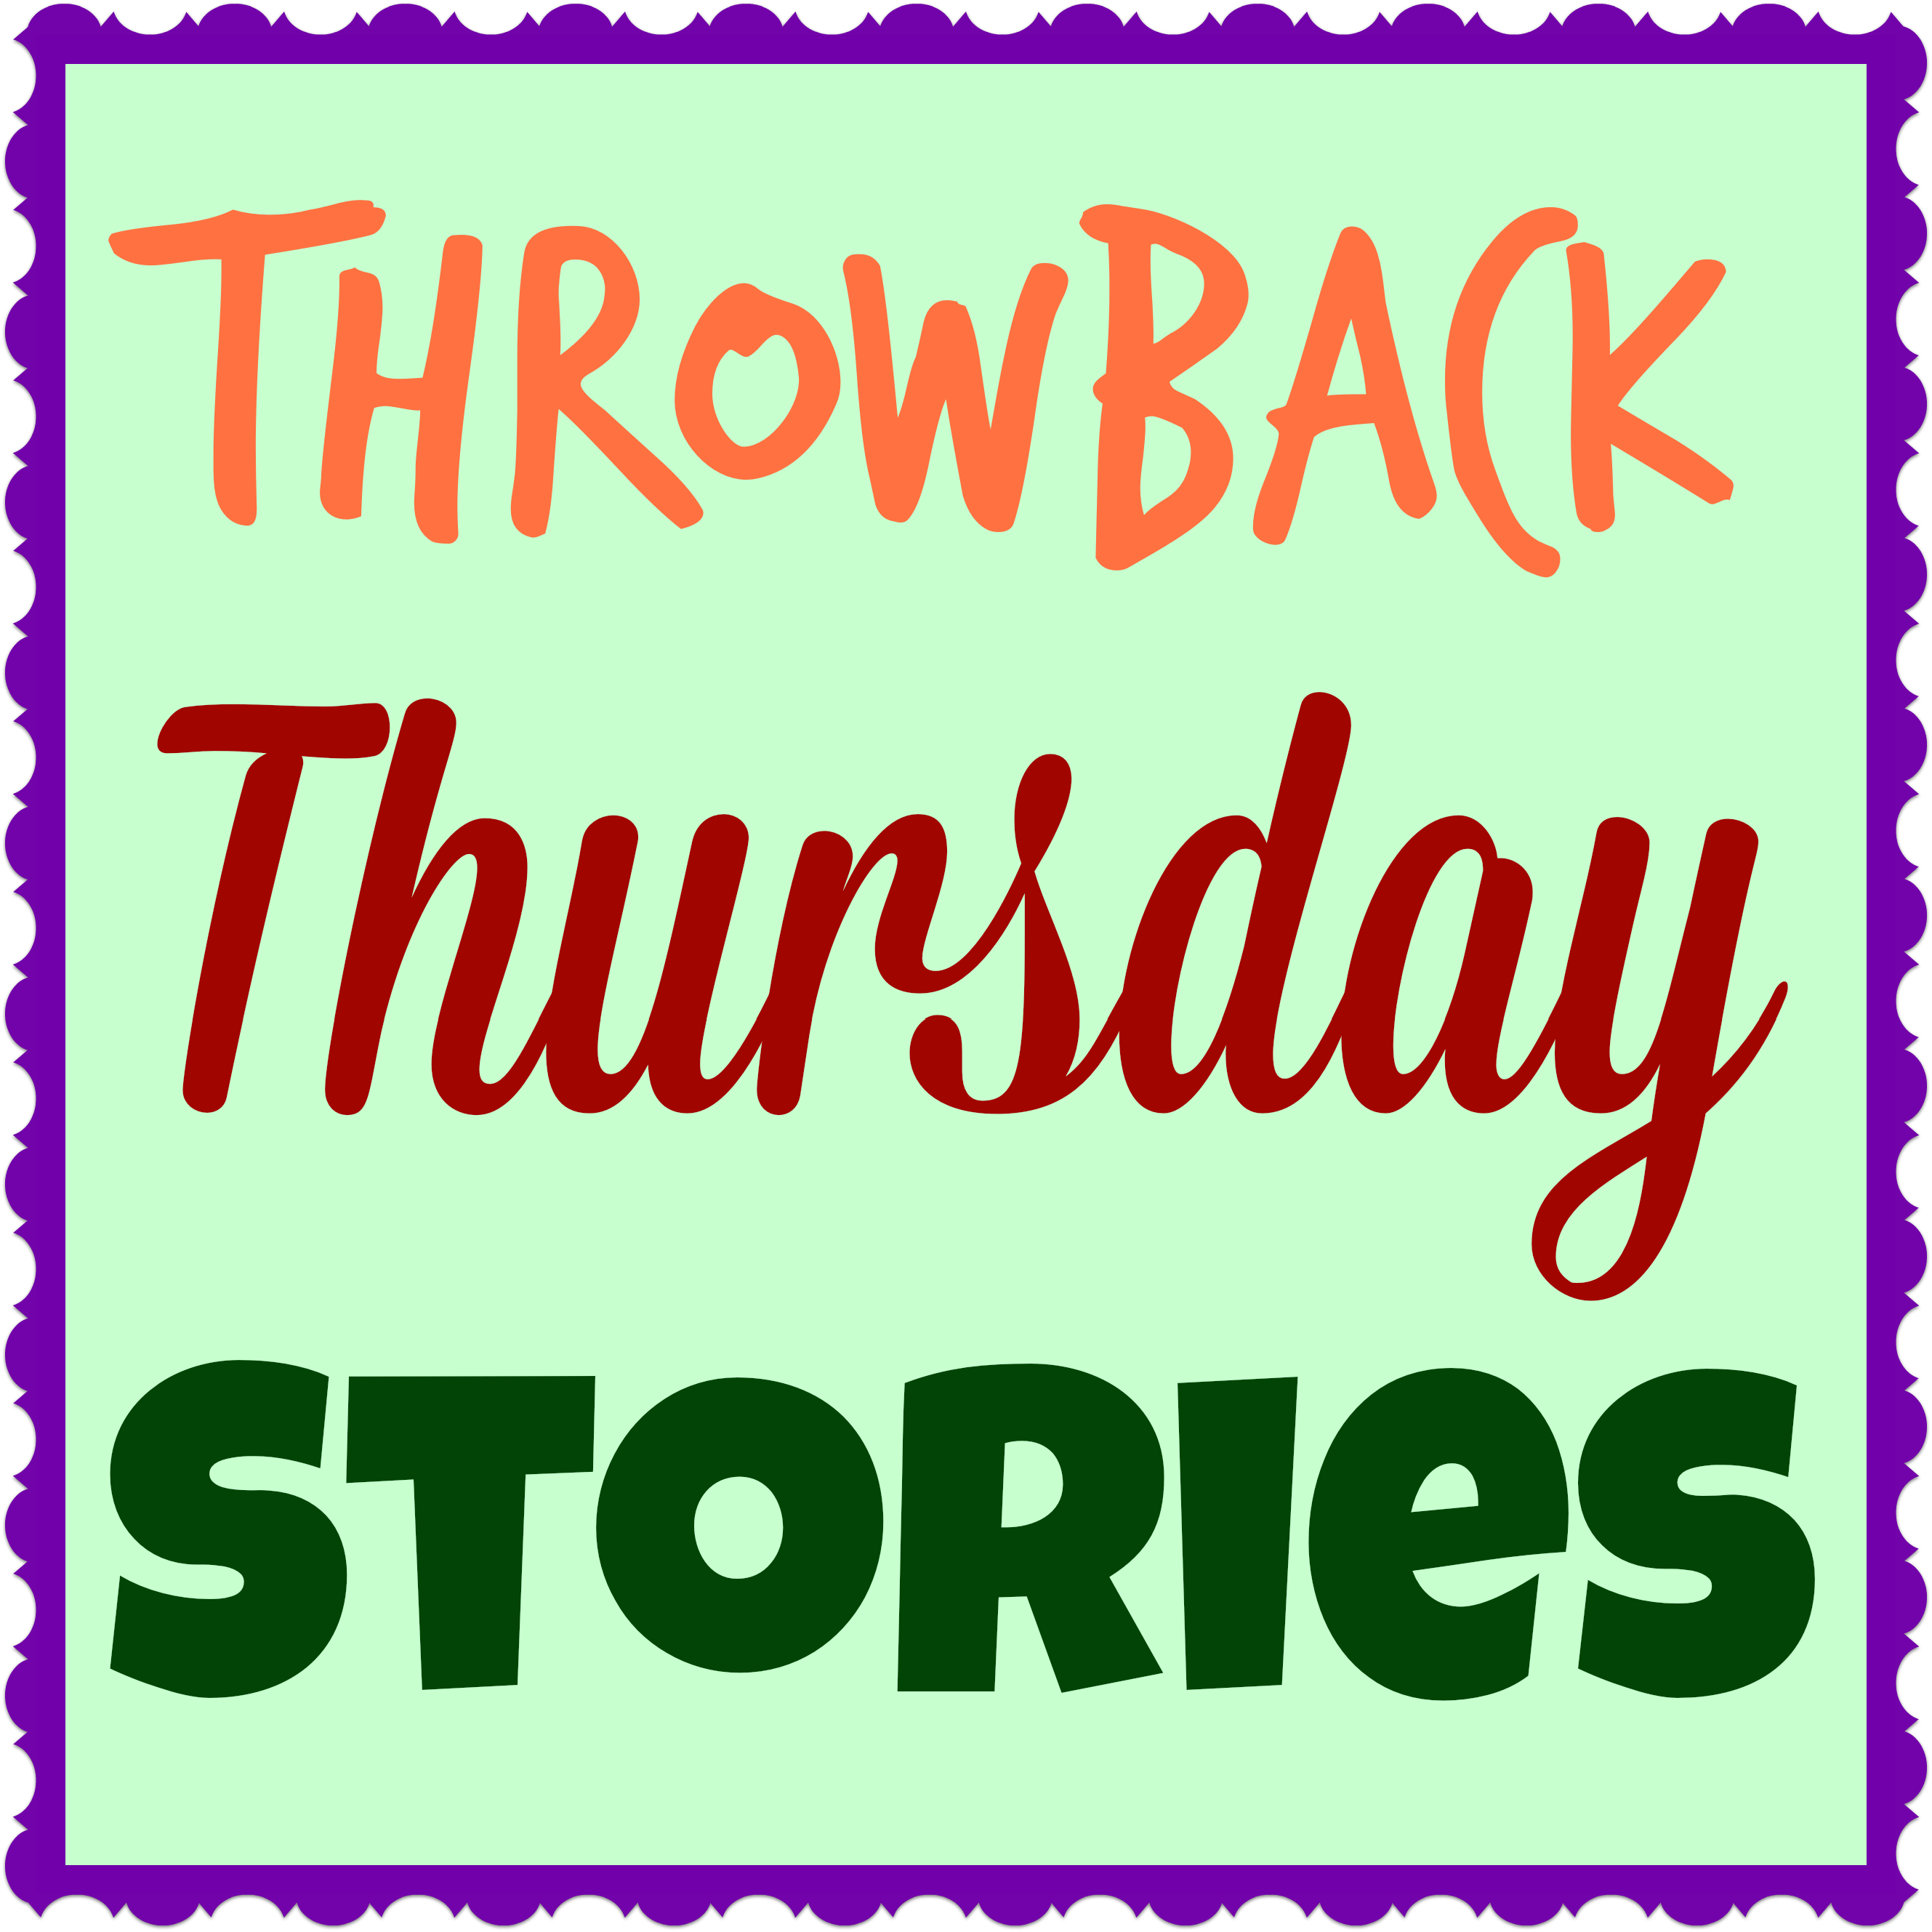 Throwback Thursday | Euro Palace Casino Blog